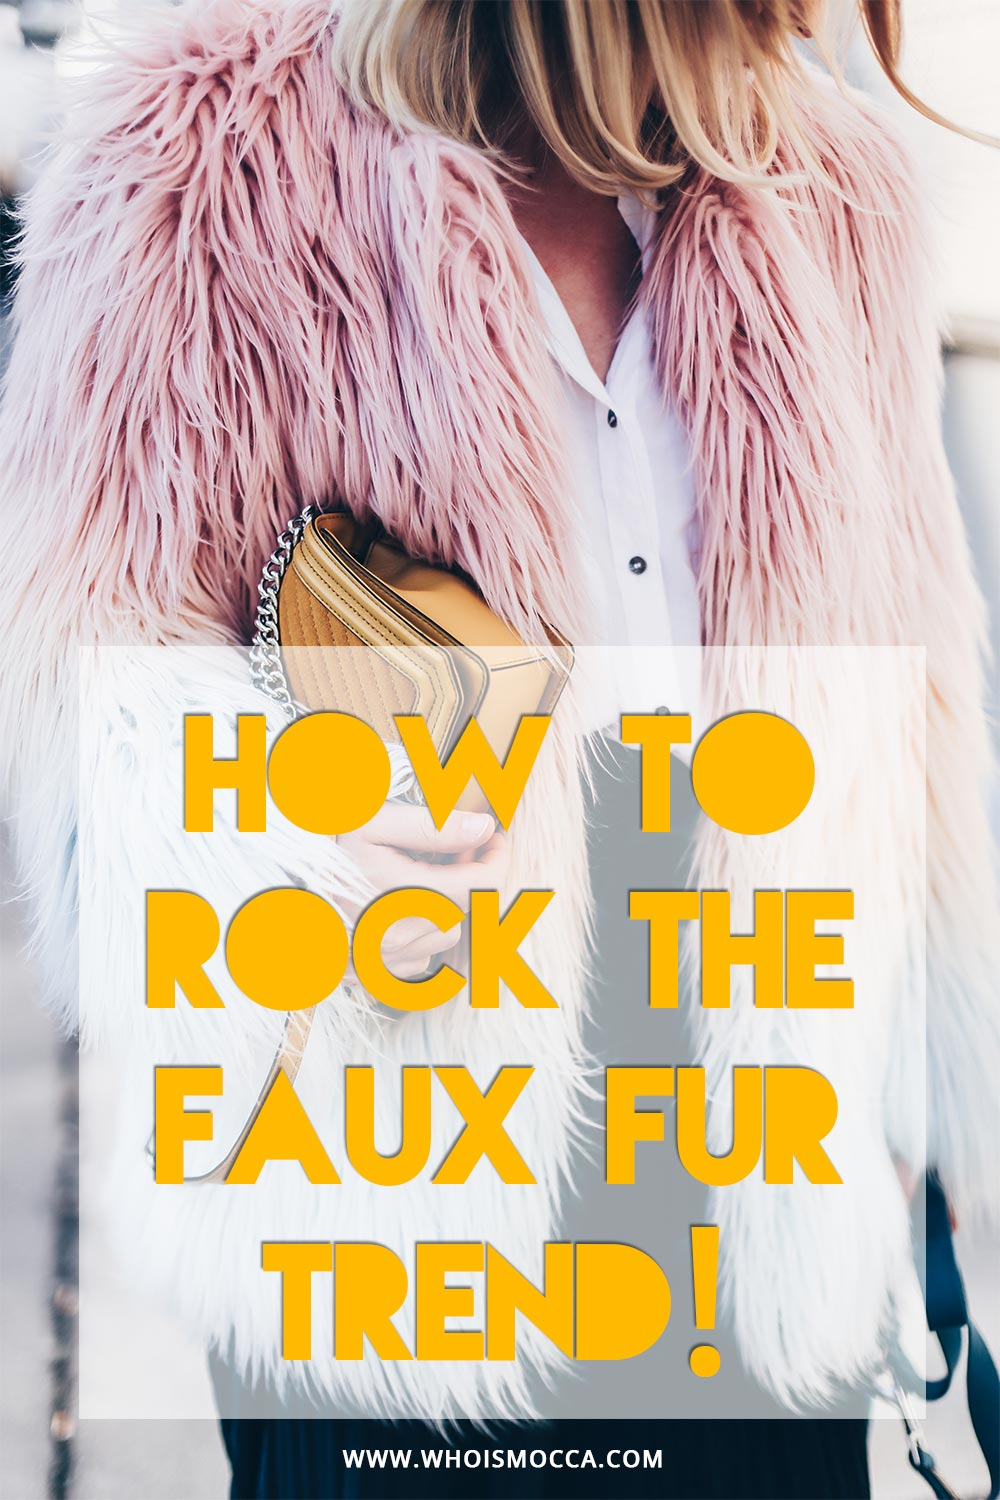 how to rock the faux fur trend, Winter Outfit, American Retro Fake Fur Jacke, Streetstyle, Samtculotte, Outfit Blog, Style Blog, Fashionblog, Modeblog, whoismocca.com